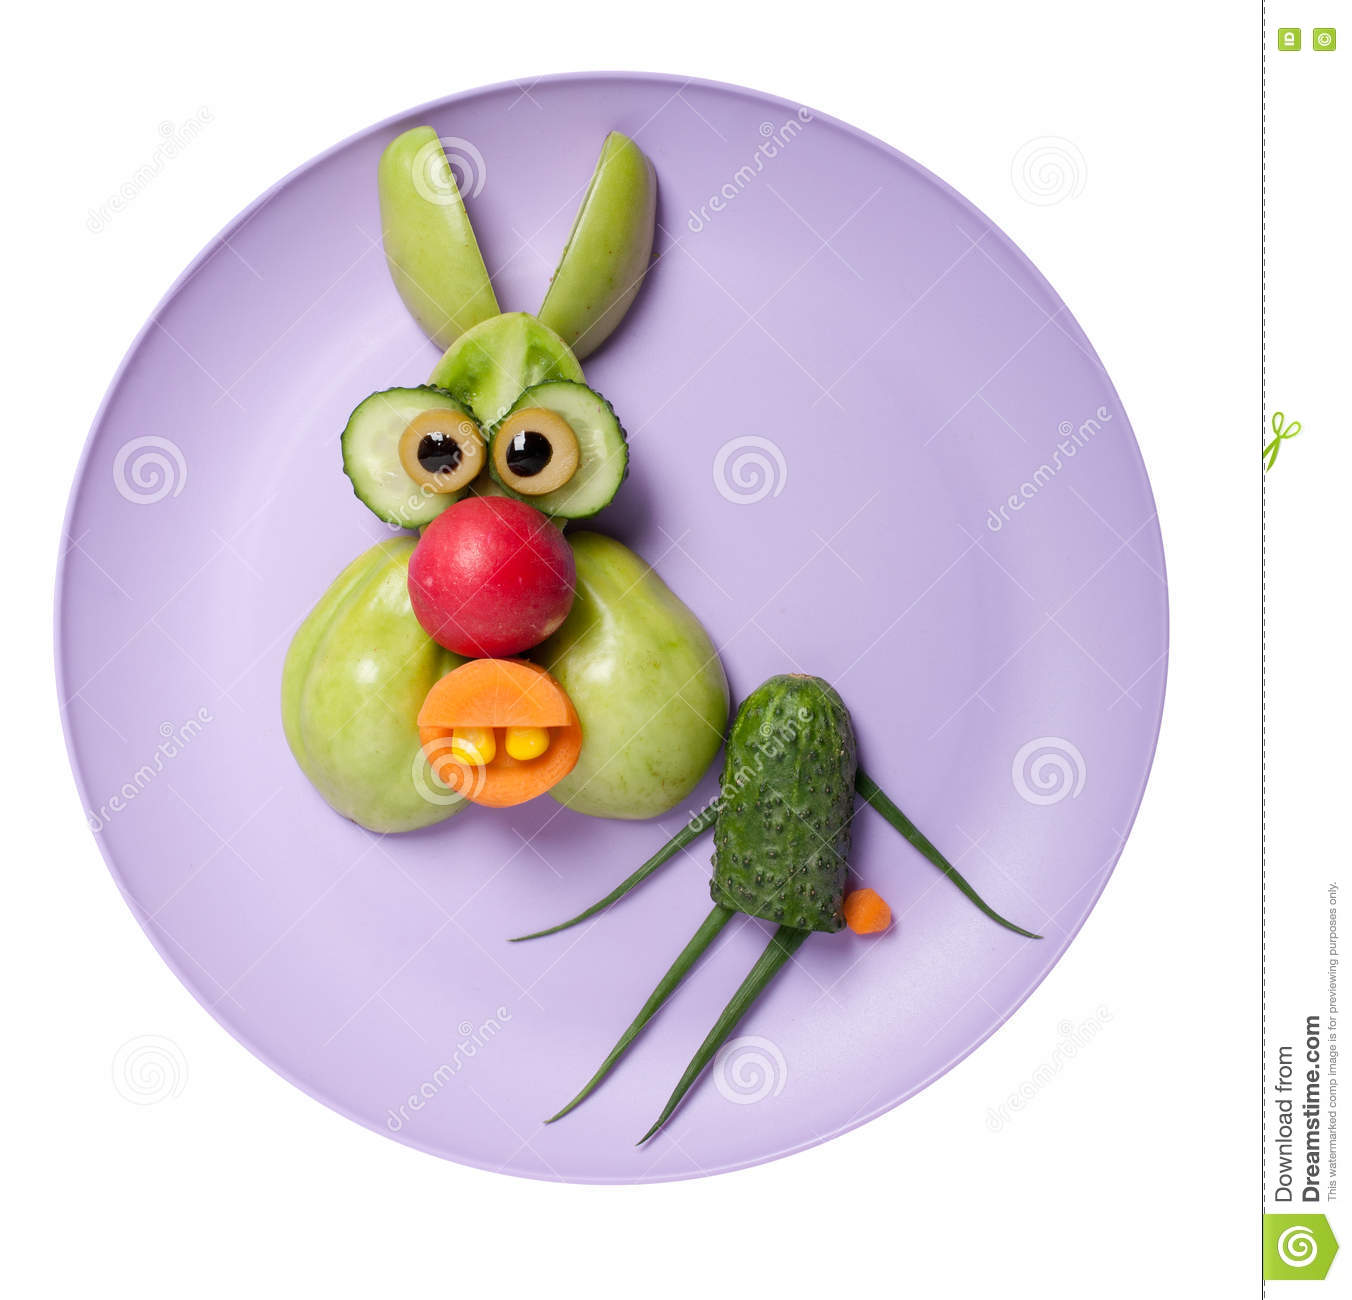 Funny rabbit made of green vegetables